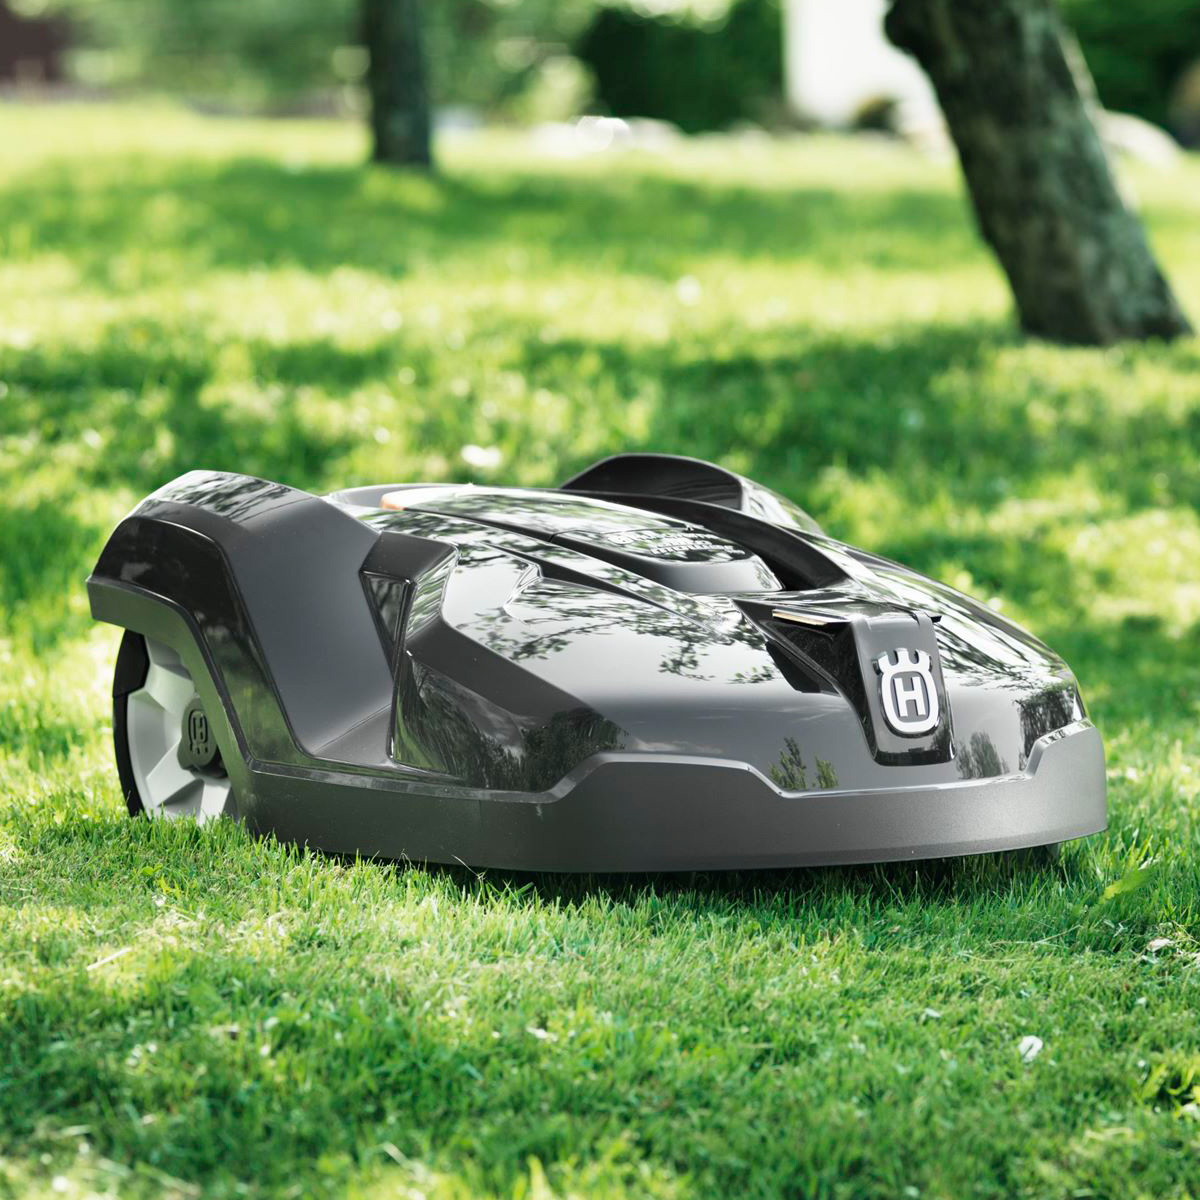 how to start husqvarna lawn mower